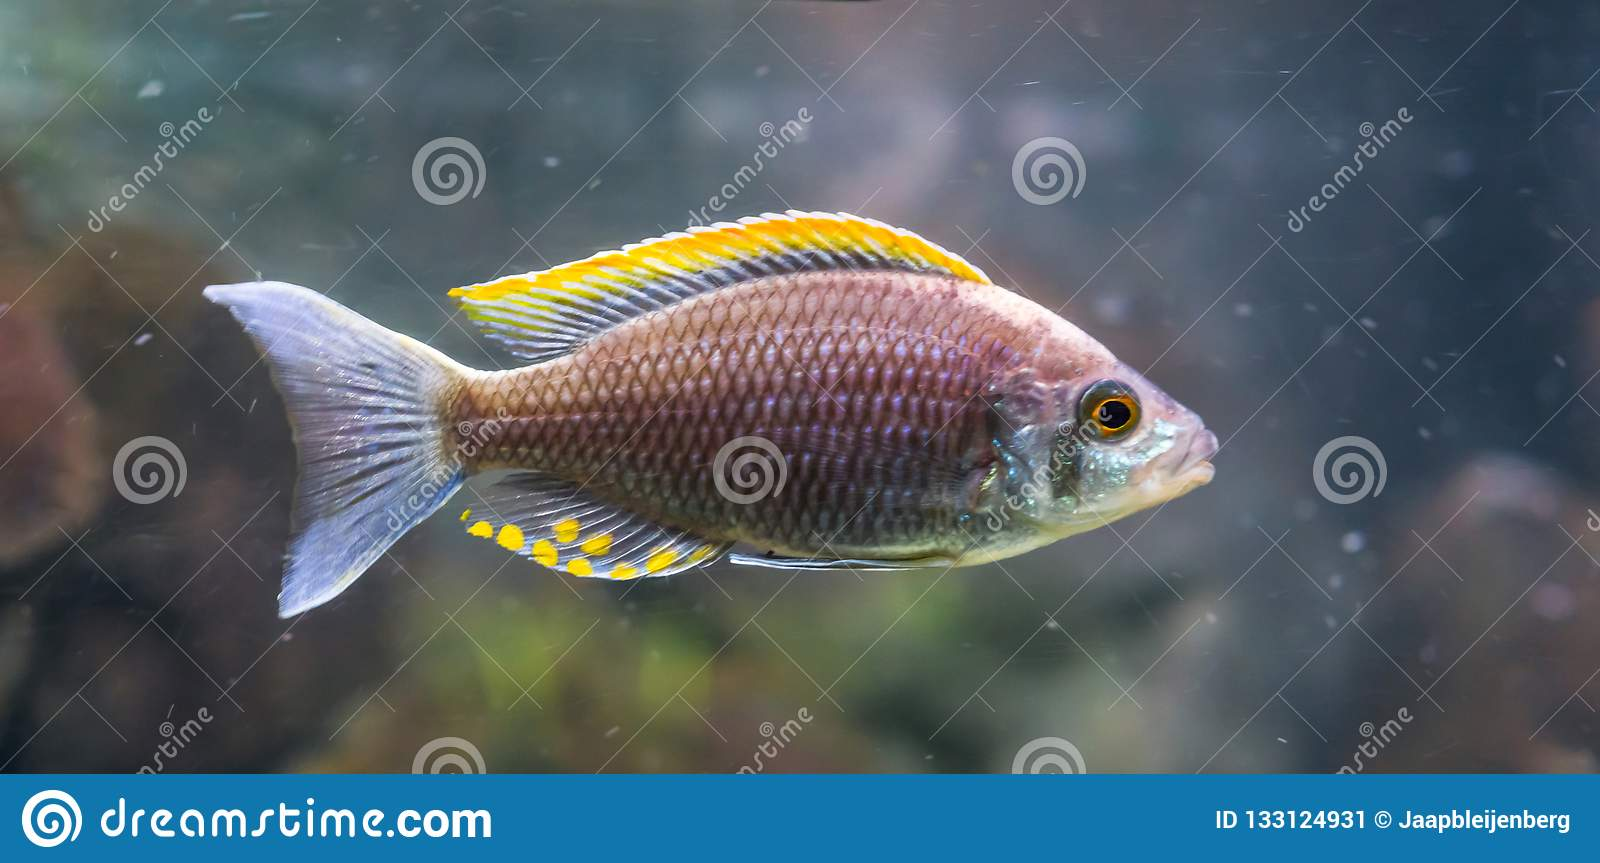 Aquaculture a rare fire crest mloto chichlid fish, believed to be extinct in the wild